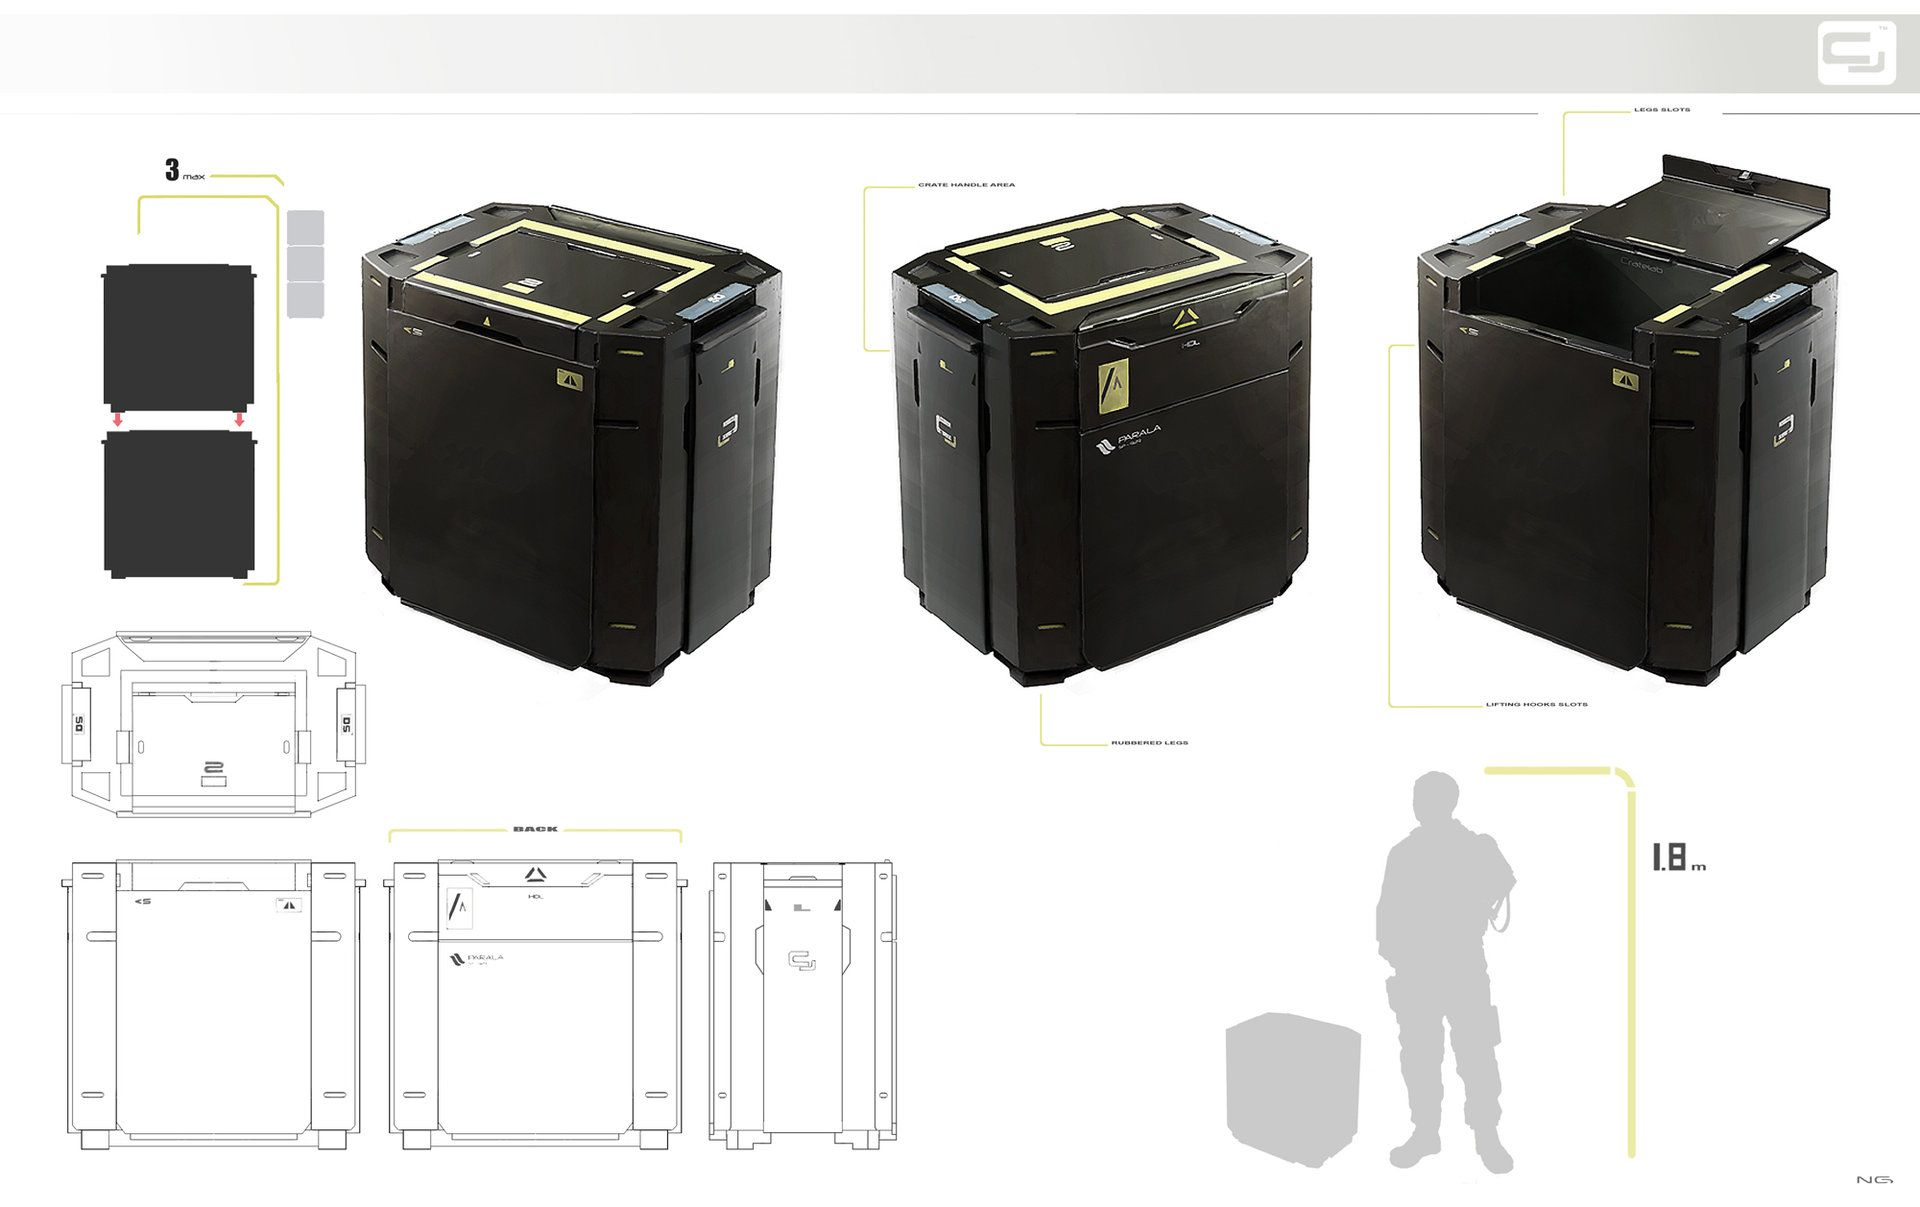 Deus Ex 3 inspired crate design. It's done in precise 3 point perspective by hand.